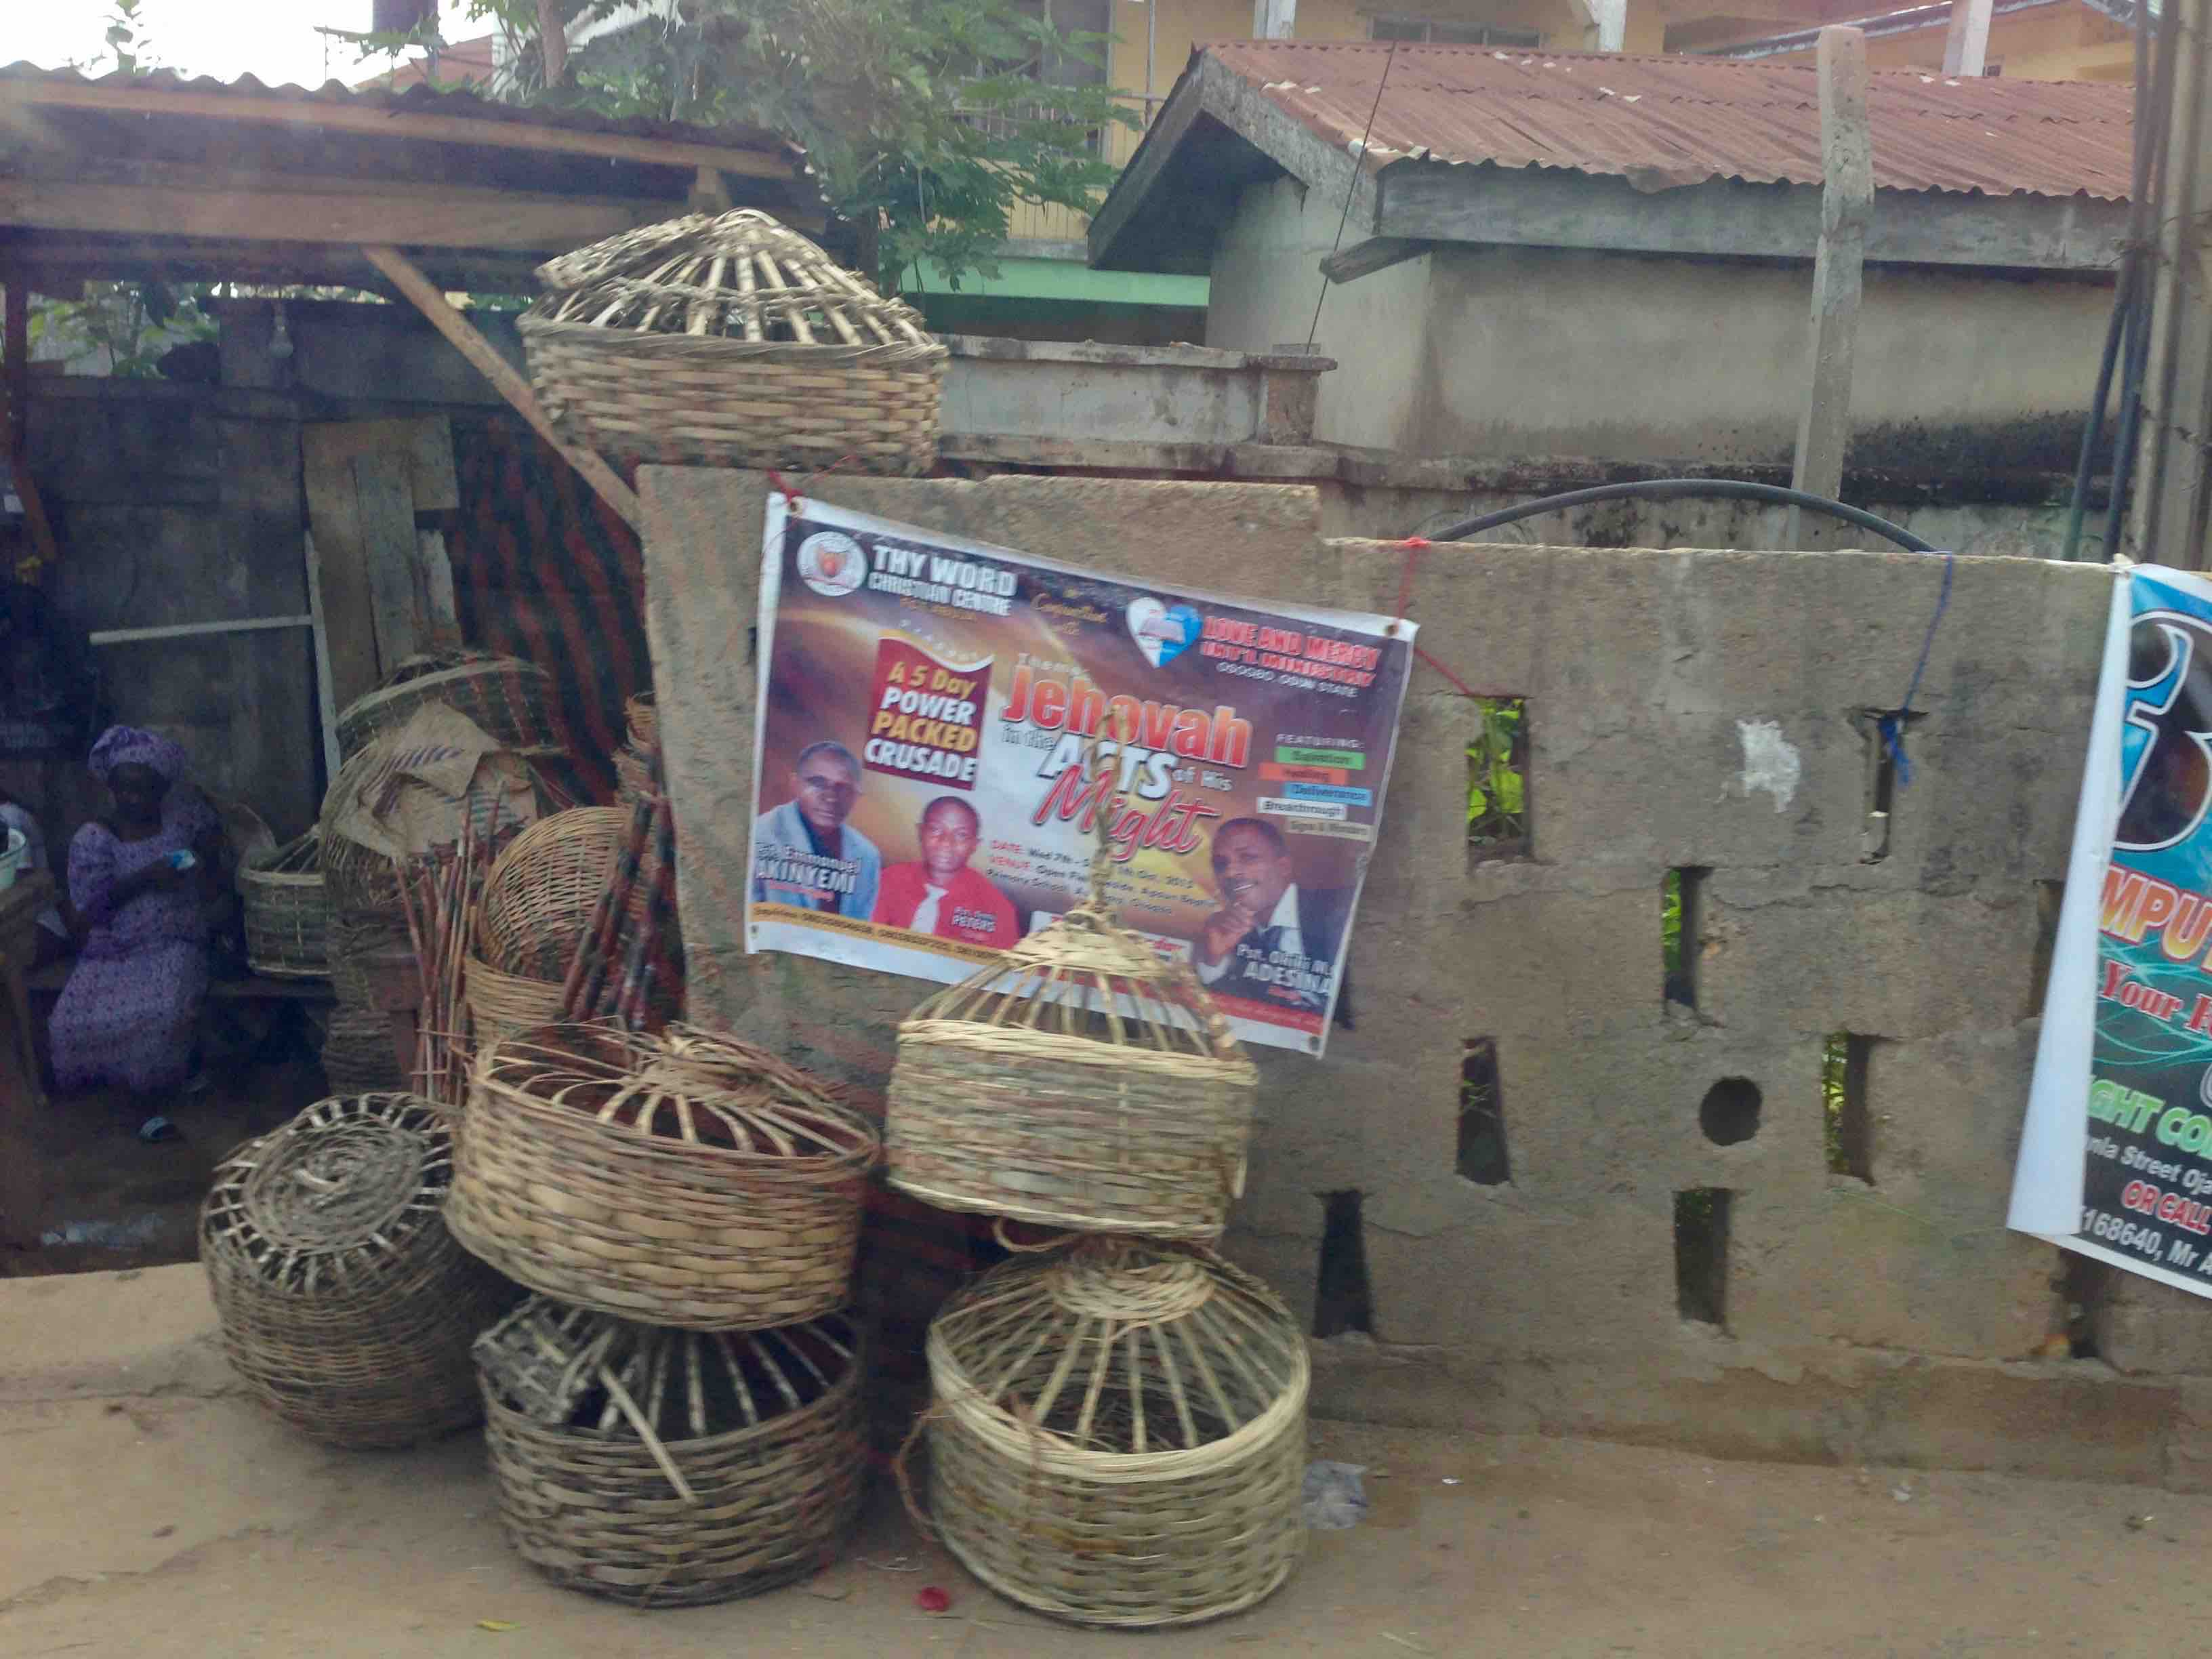 Chicken baskets, Oshogbo, Osun, Nigeria. #JujuFilms